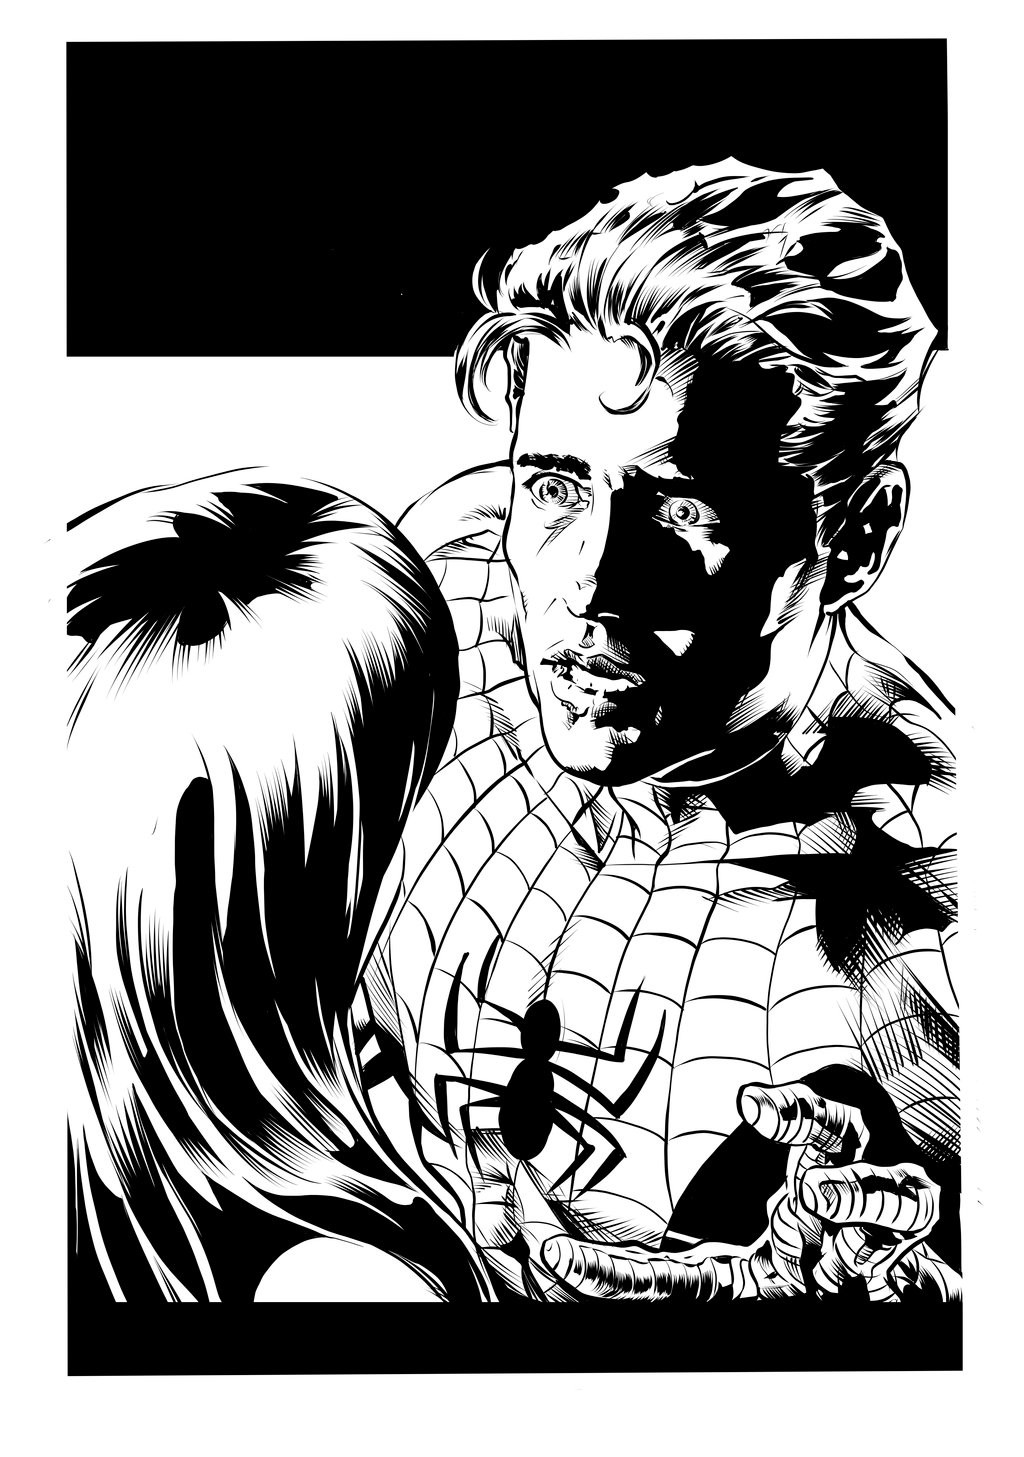 Matt james deodato amazing spiderman 01 by mattjamescomicarts d9h59eu